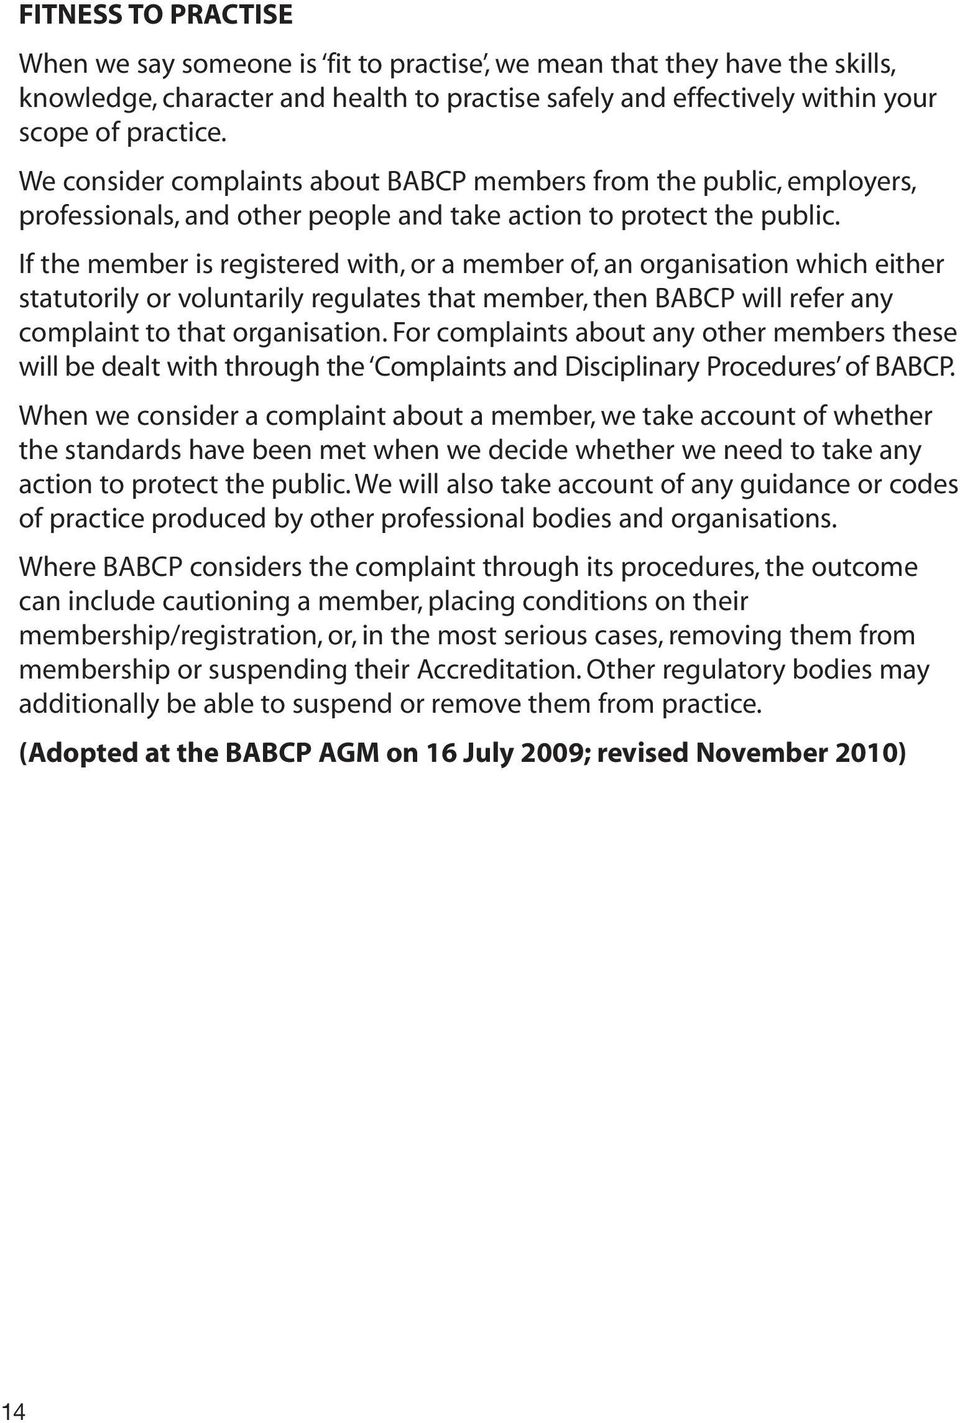 If the member is registered with, or a member of, an organisation which either statutorily or voluntarily regulates that member, then BABCP will refer any complaint to that organisation.